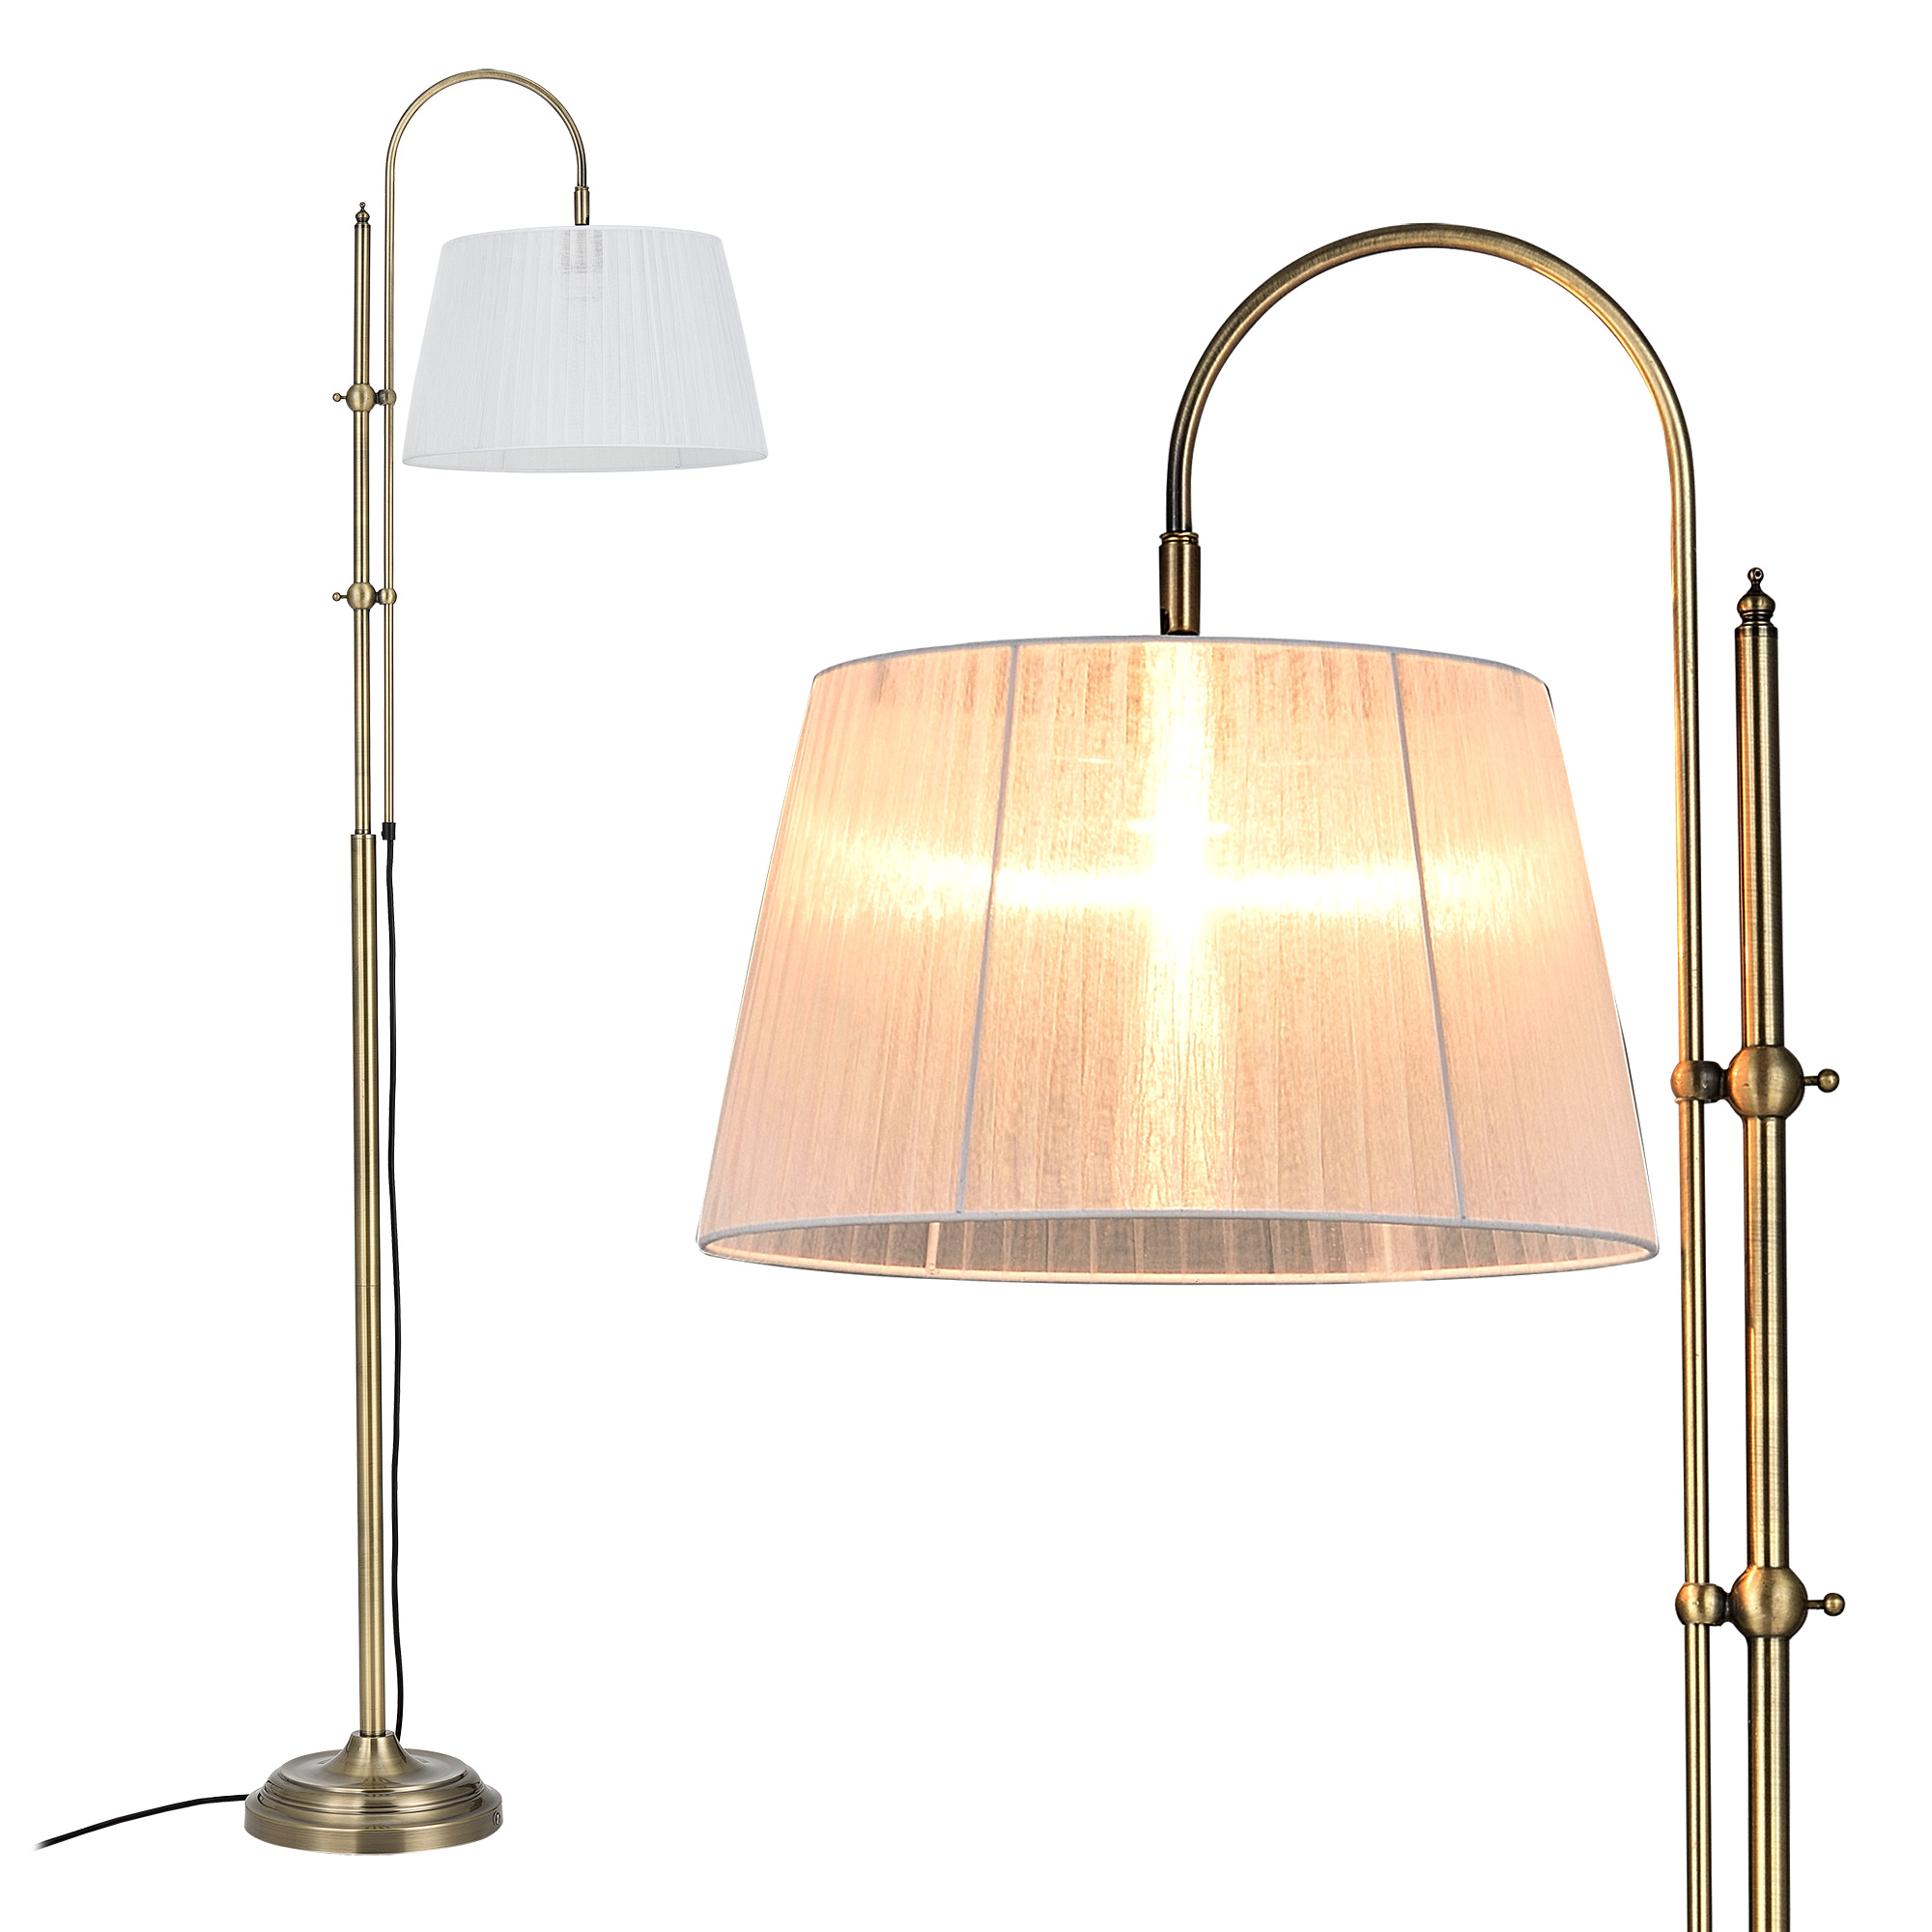 LuxproR Stehleuchte Hhe 170cm Stehlampe Standleuchte Bogenlampe Lampe